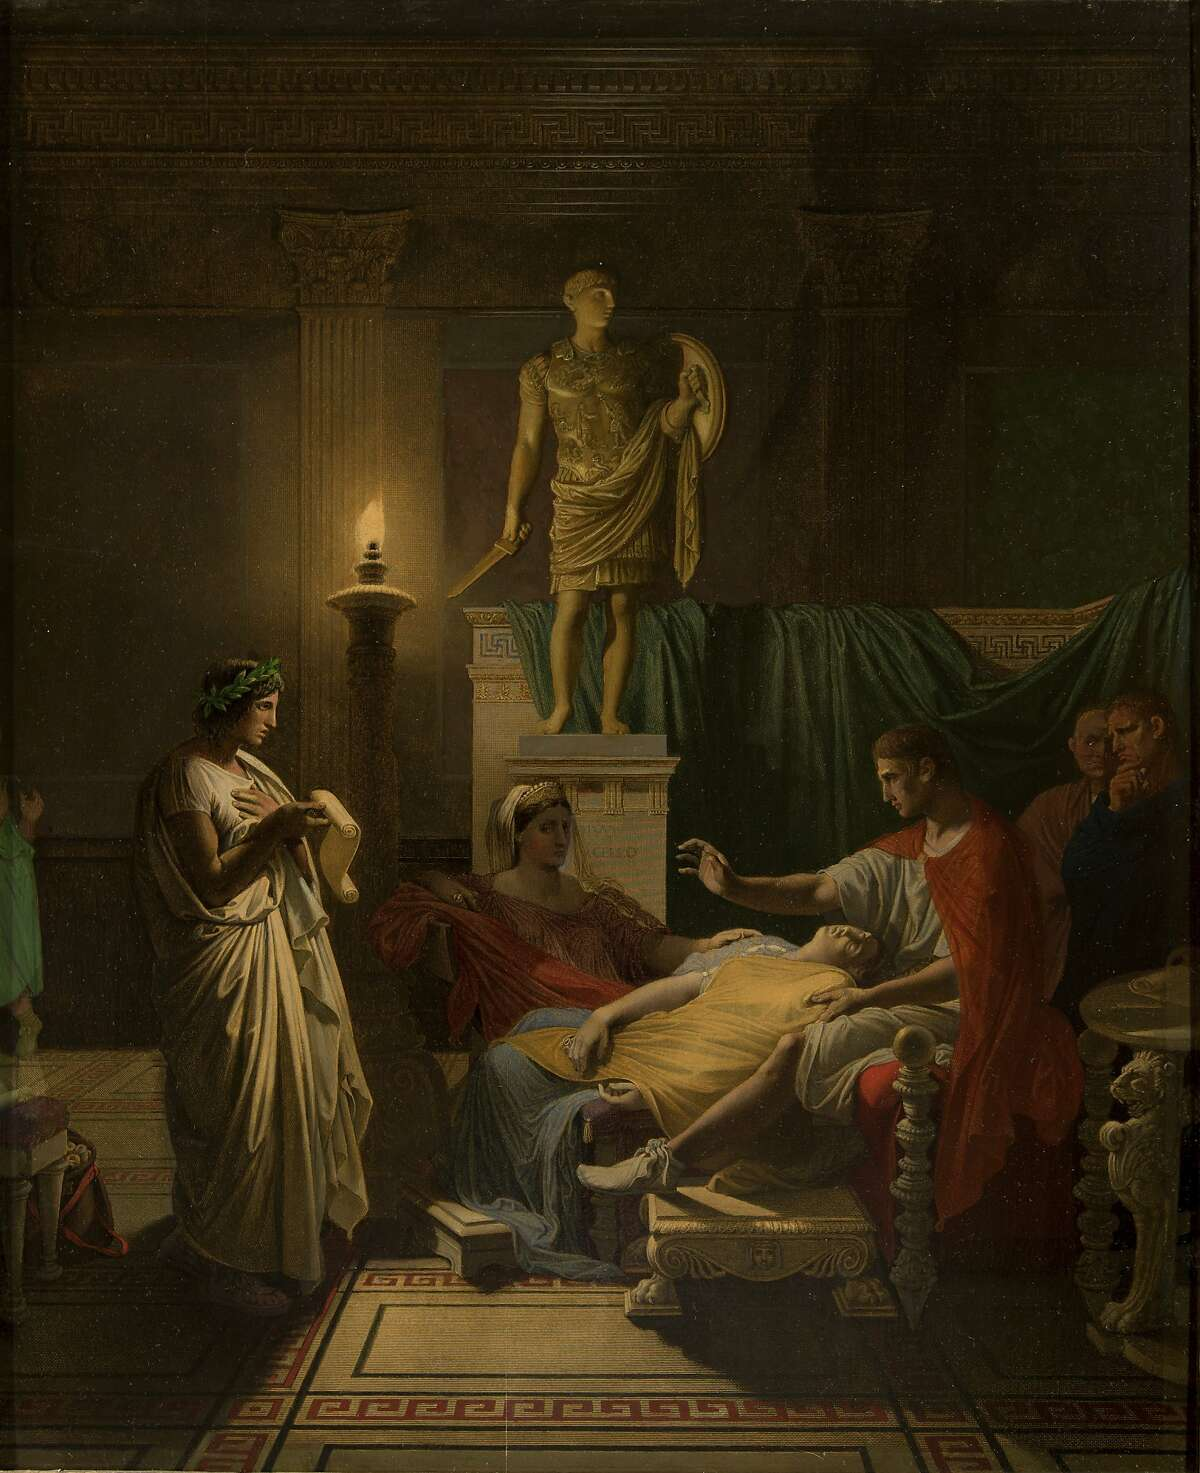 """This March 18, 2015, image provided by the La Salle University Art Museum in Philadelphia shows an 1865 oil-over-print work by French painter Jean-Auguste-Dominique Ingres titled """"Virgil Reading the Aeneid Before Augustus."""" The painting is one of 46 artworks that La Salle University in Philadelphia announced Tuesday, Jan. 2, 2018, it will sell through Christie's auction house to help fund the Roman Catholic university's five-year plan. A university spokeswoman says the sale, tentatively set to begin in March 2018, could bring between $4 million and $7 million, and possibly much more. (La Salle University Art Museum via AP)"""